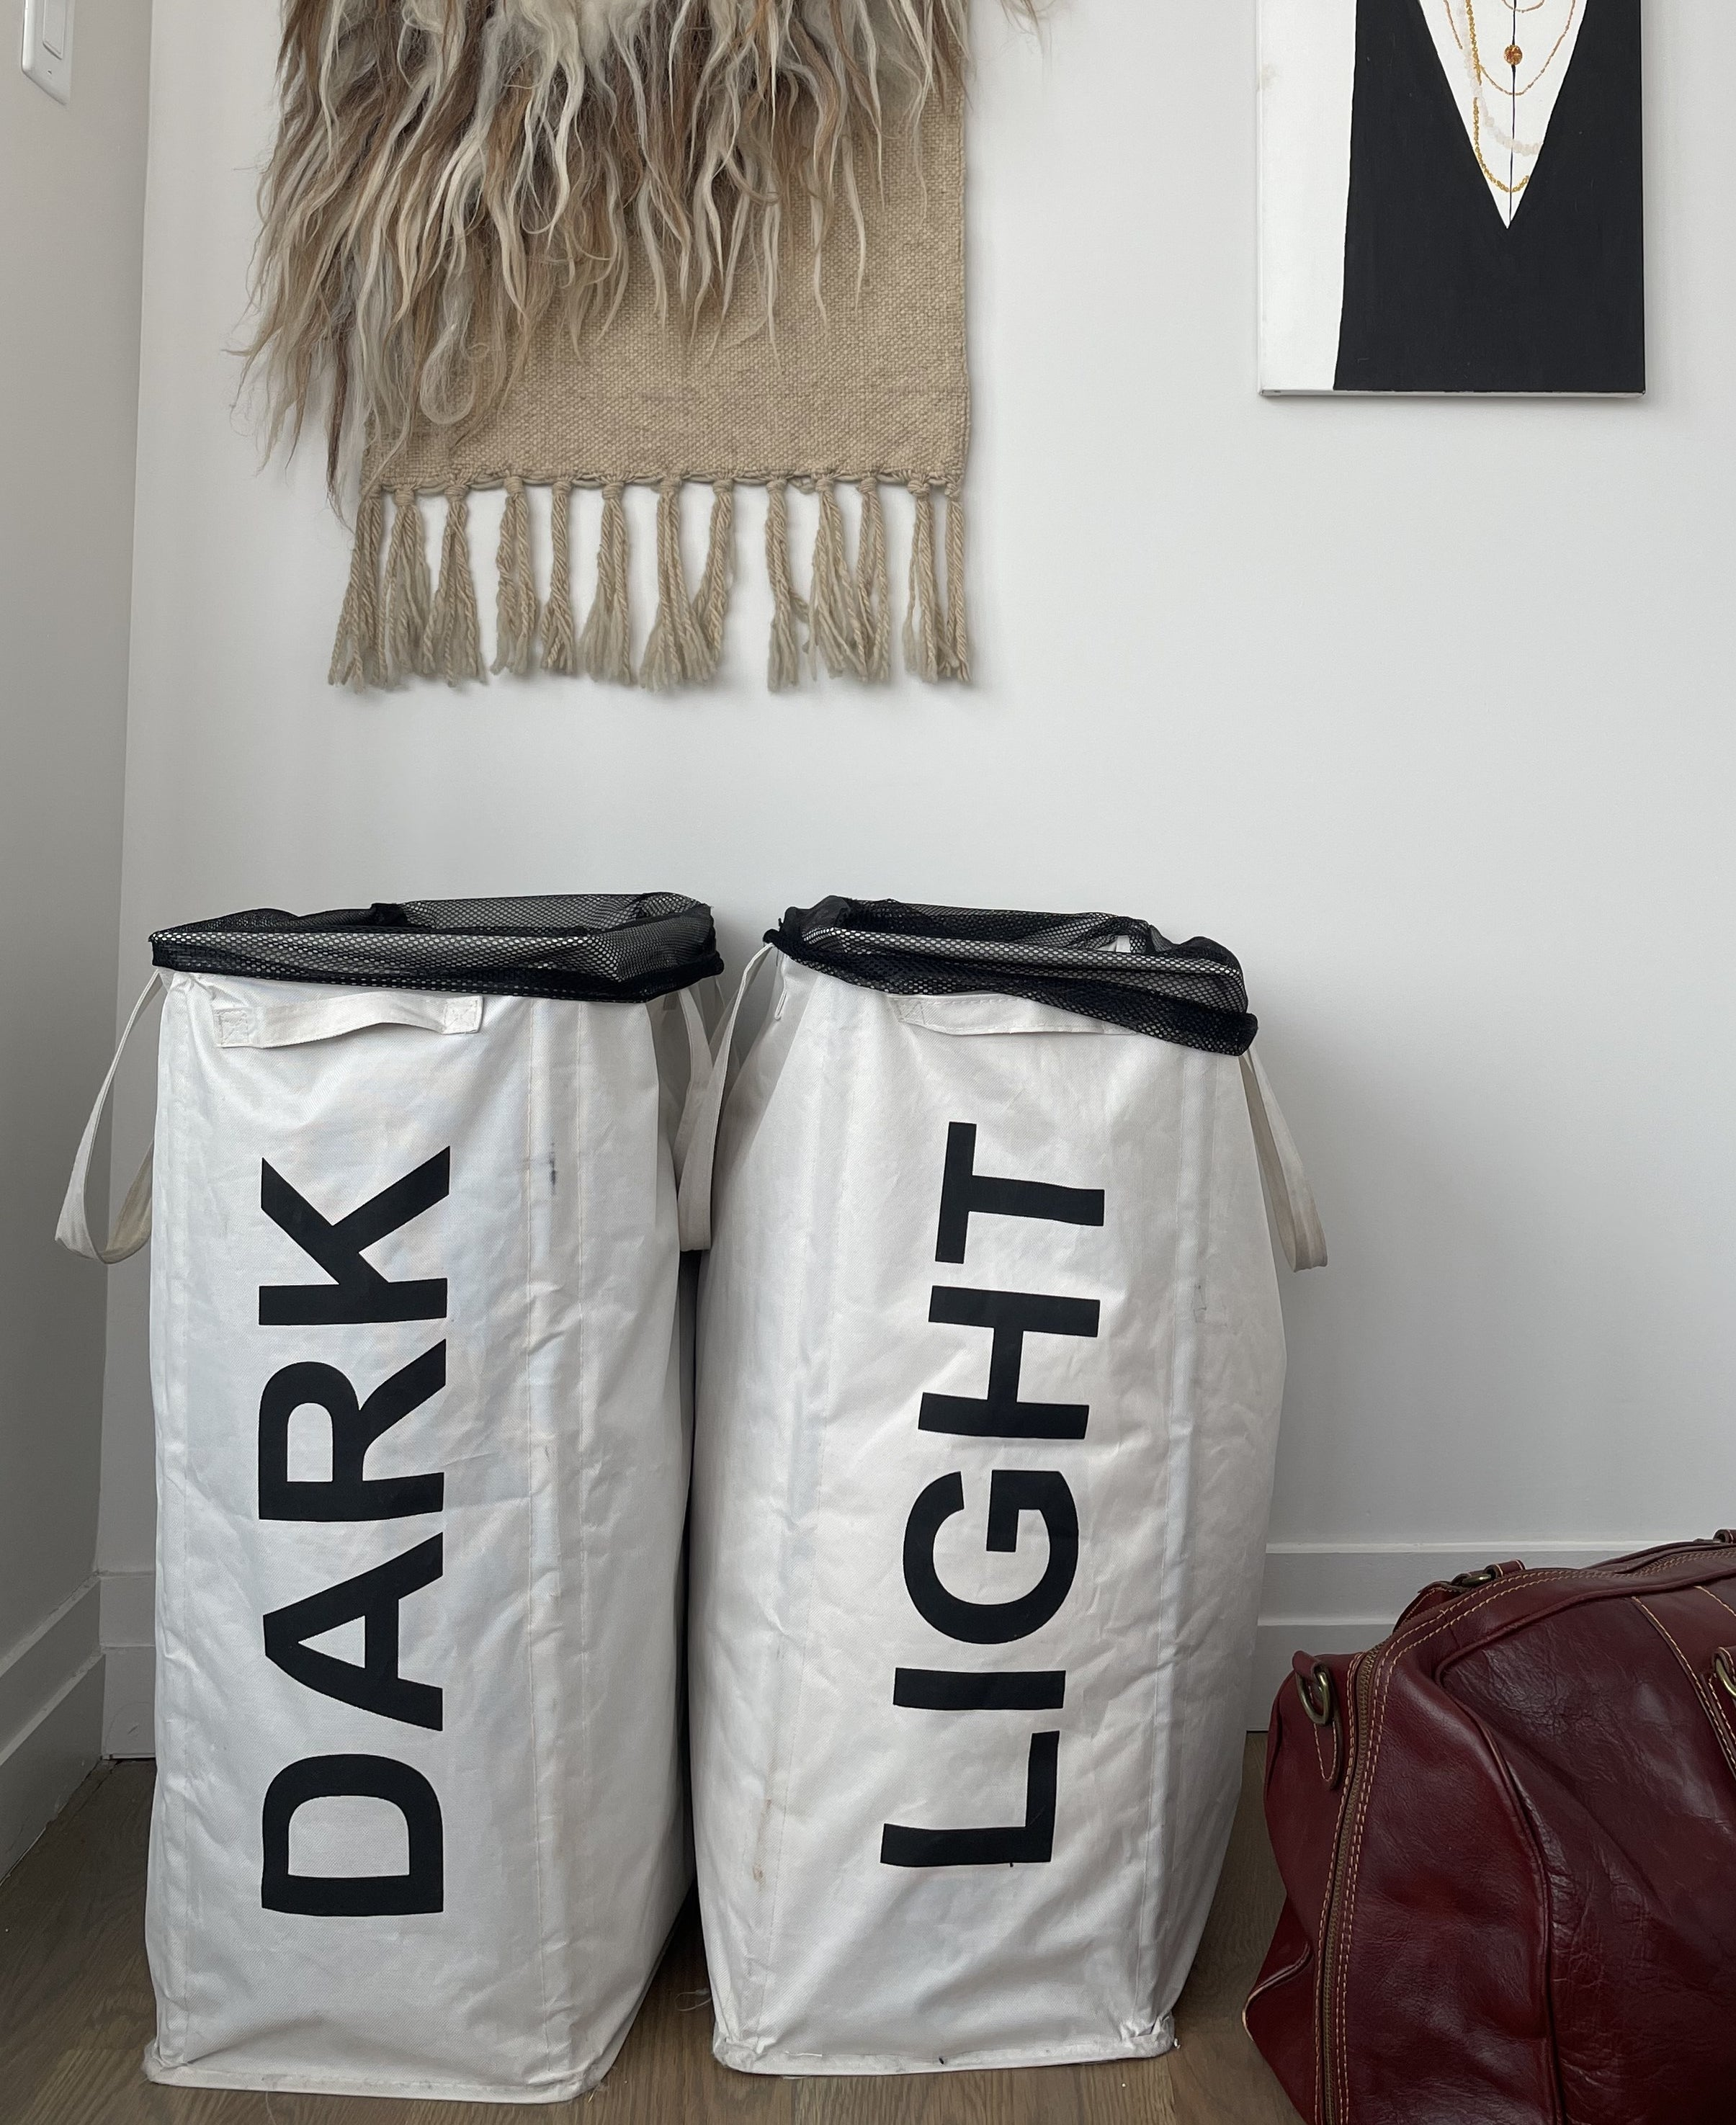 """buzzfeed writer's two cloth laundry hampers with handles and mesh bags inside, one says """"Dark"""" and the other """"Light"""""""